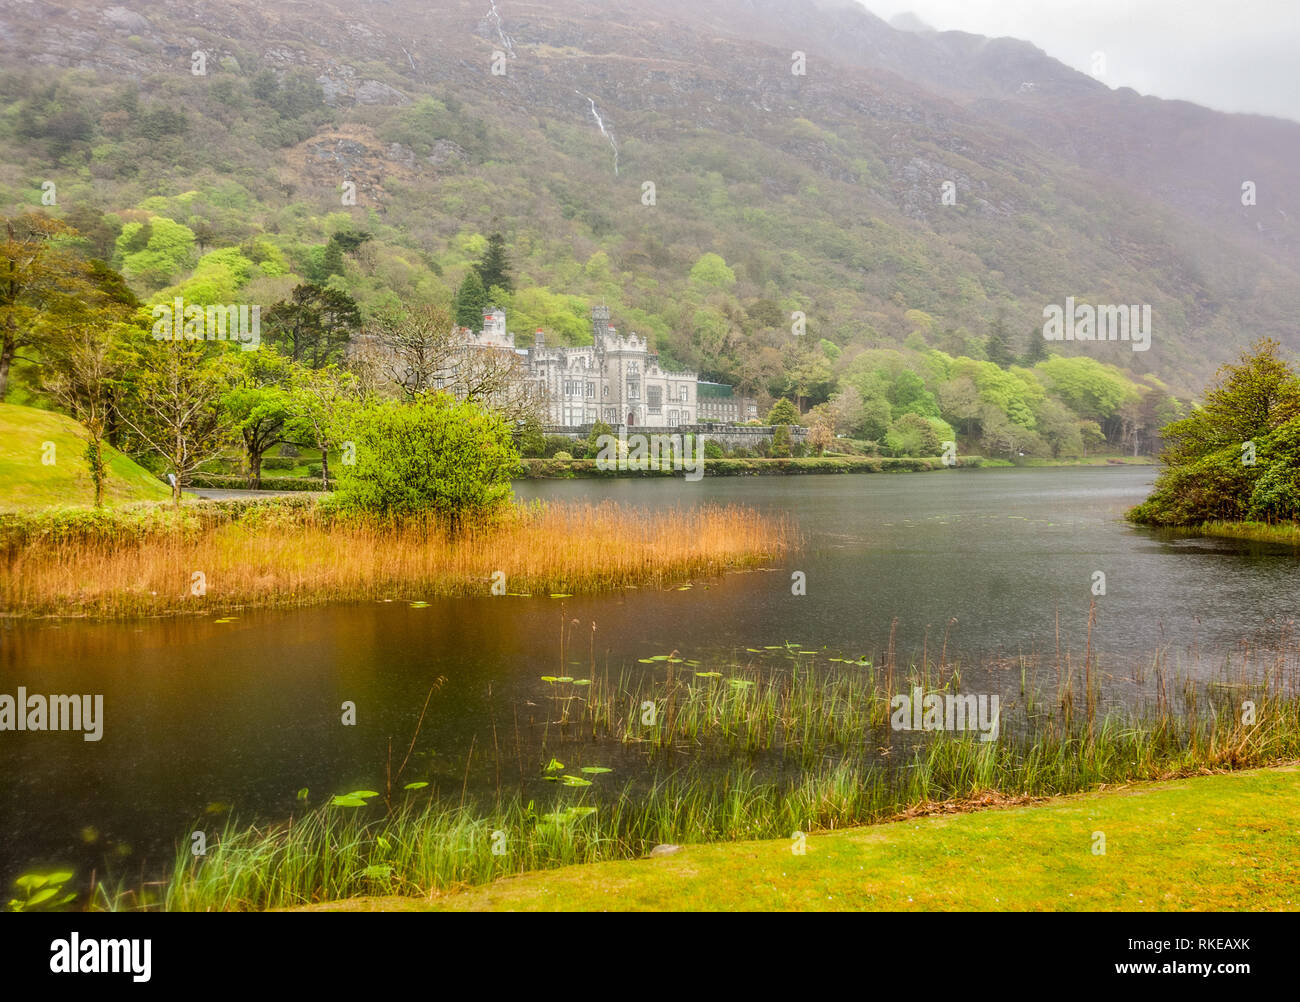 Kylemore Abbey in Connemara, a region in Ireland Stock Photo